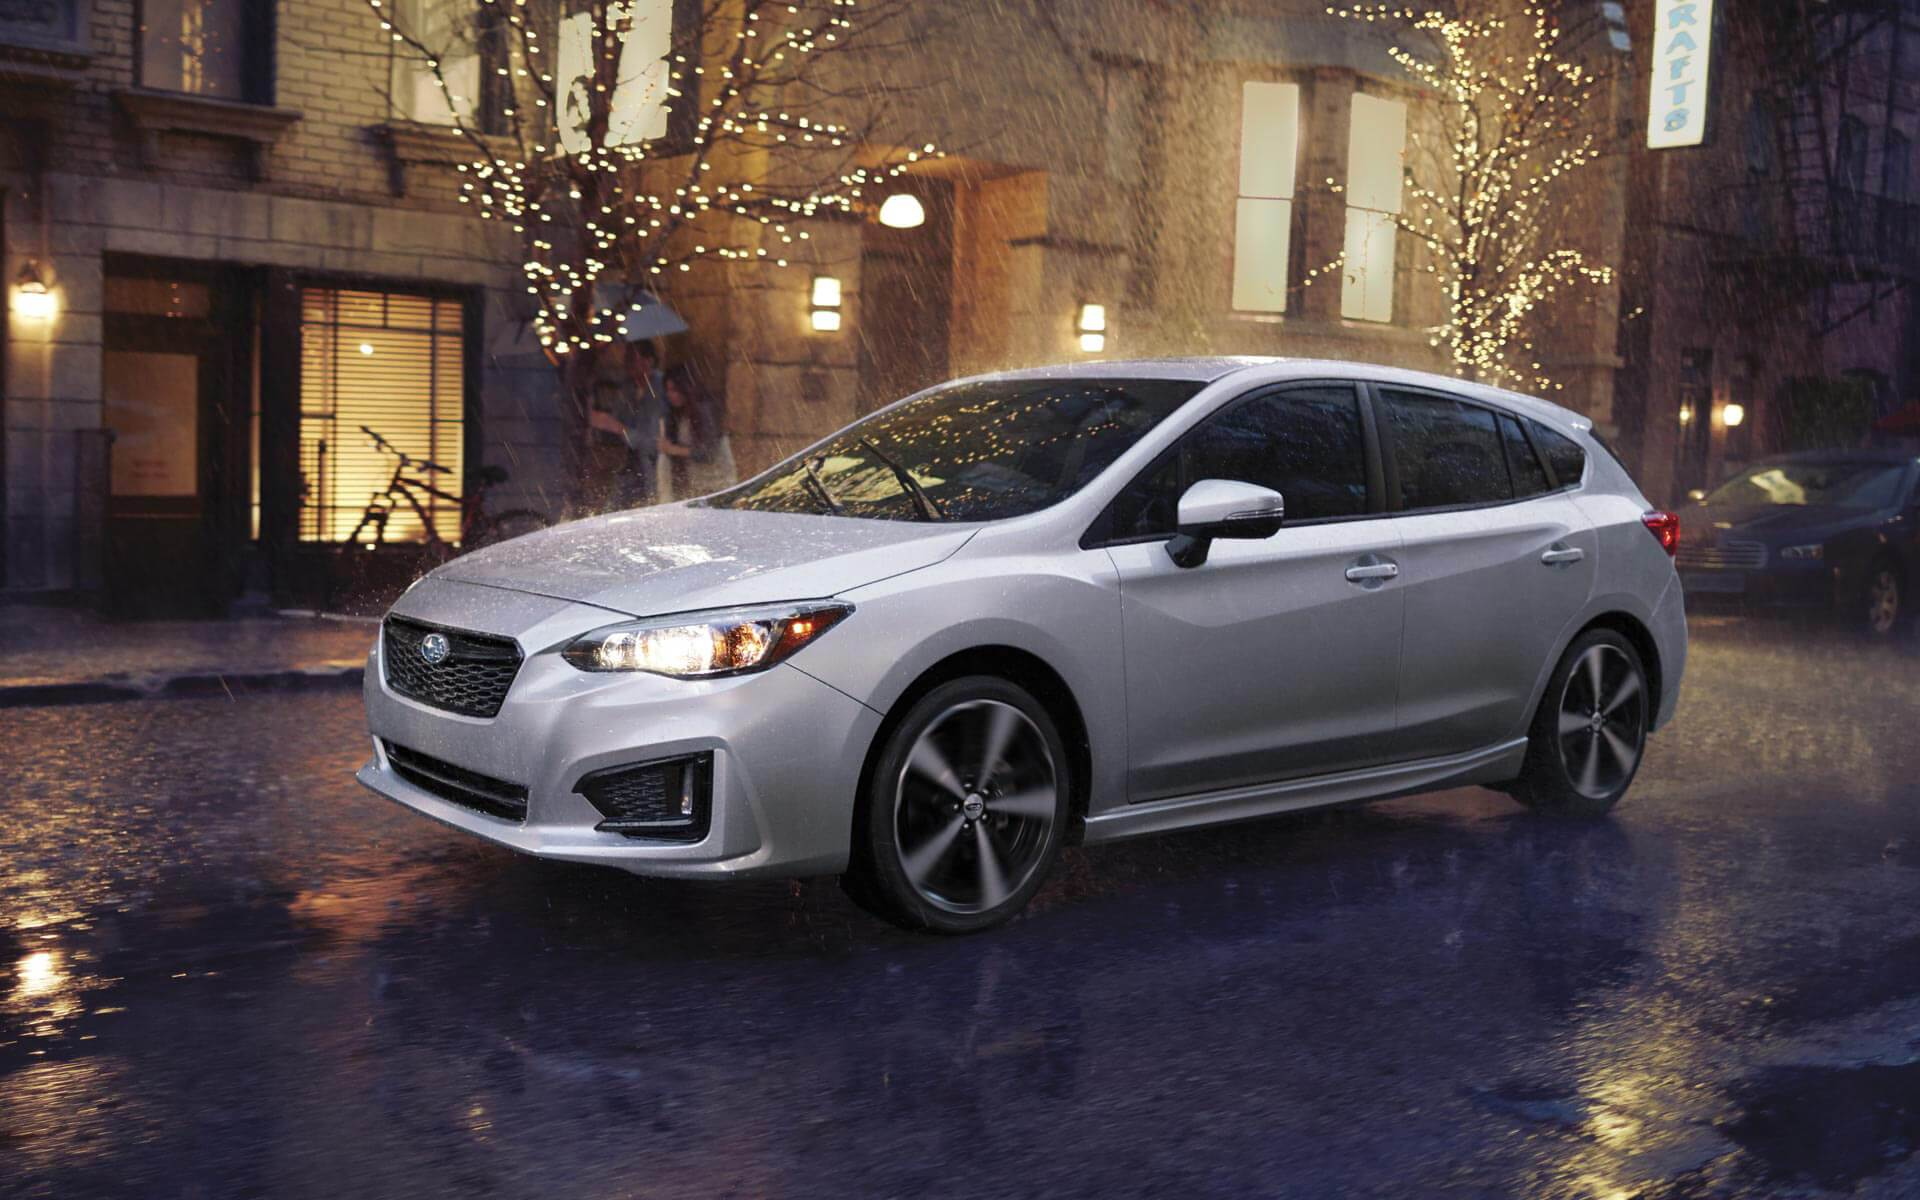 Sleek 2019 Subaru Impreza For Sale in Bay City